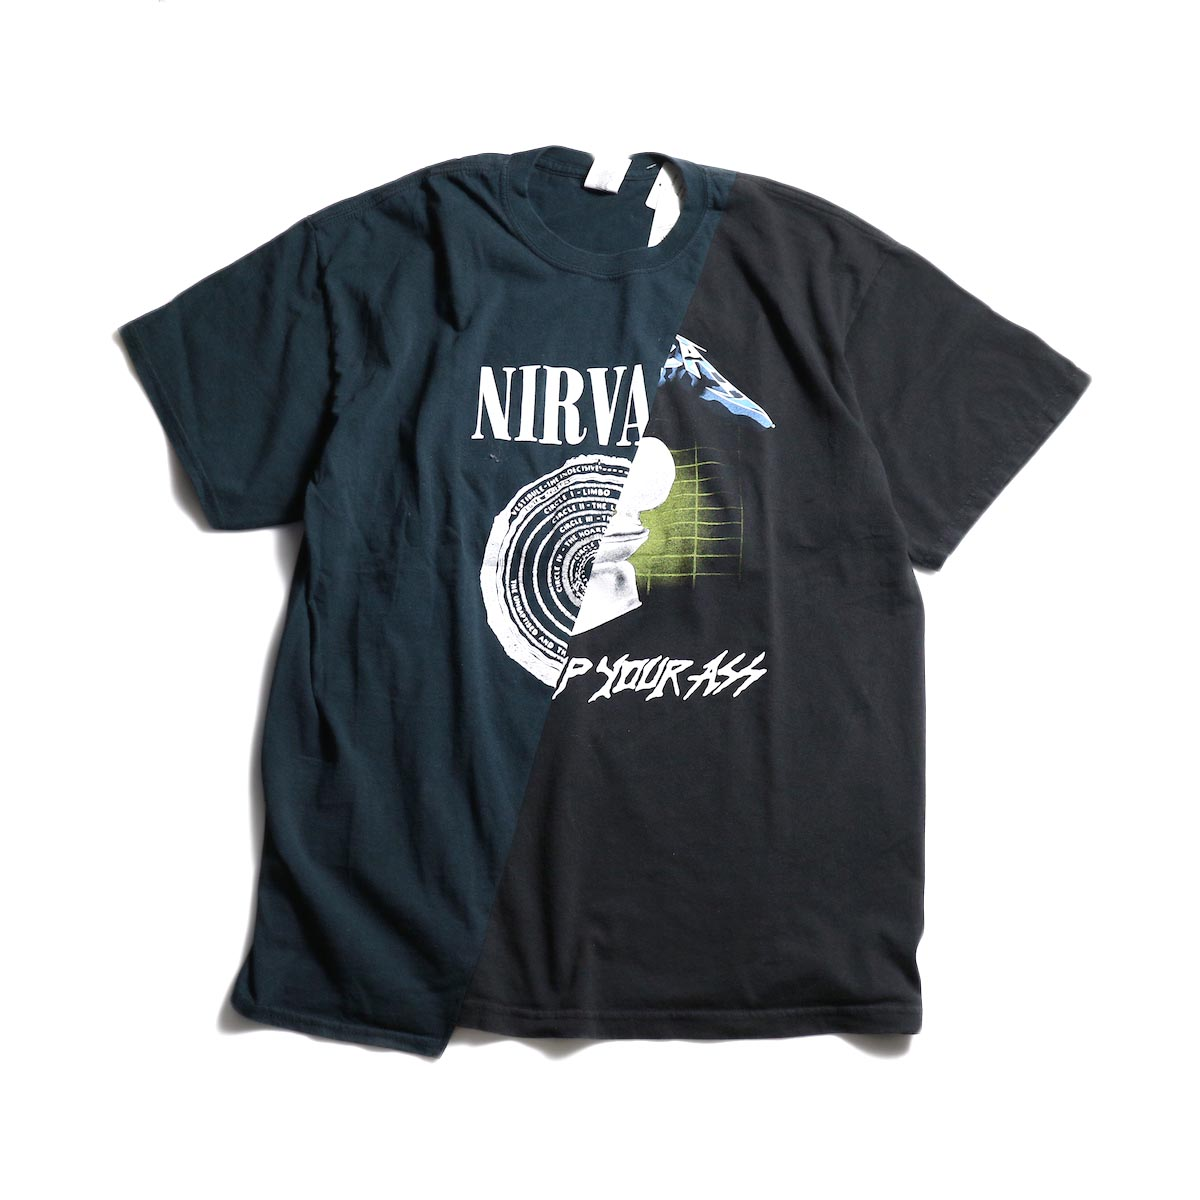 THRIFTY LOOK / Twins Mix Tee (A)